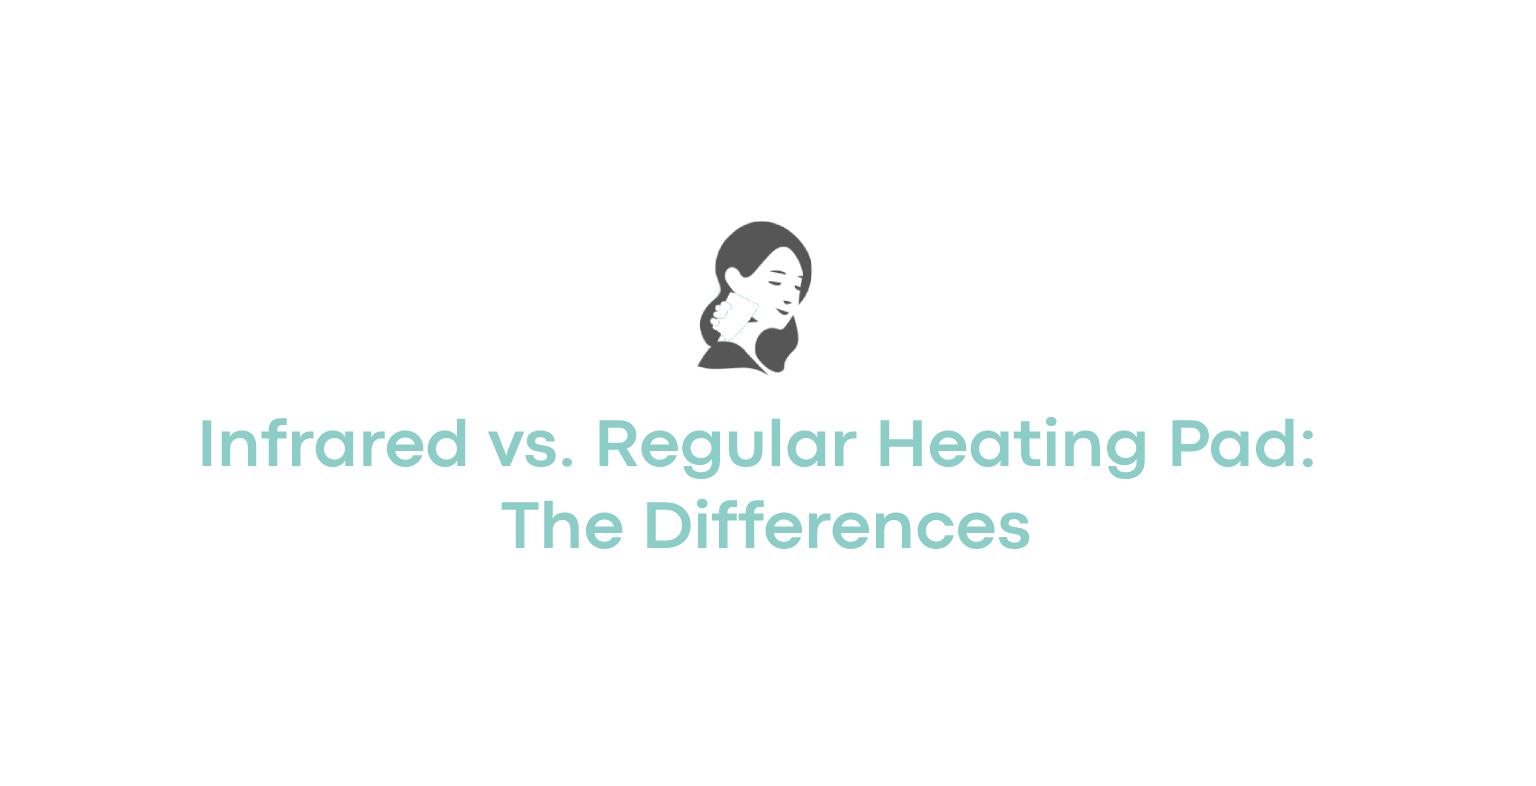 Infrared vs. Regular Heating Pad The Differences